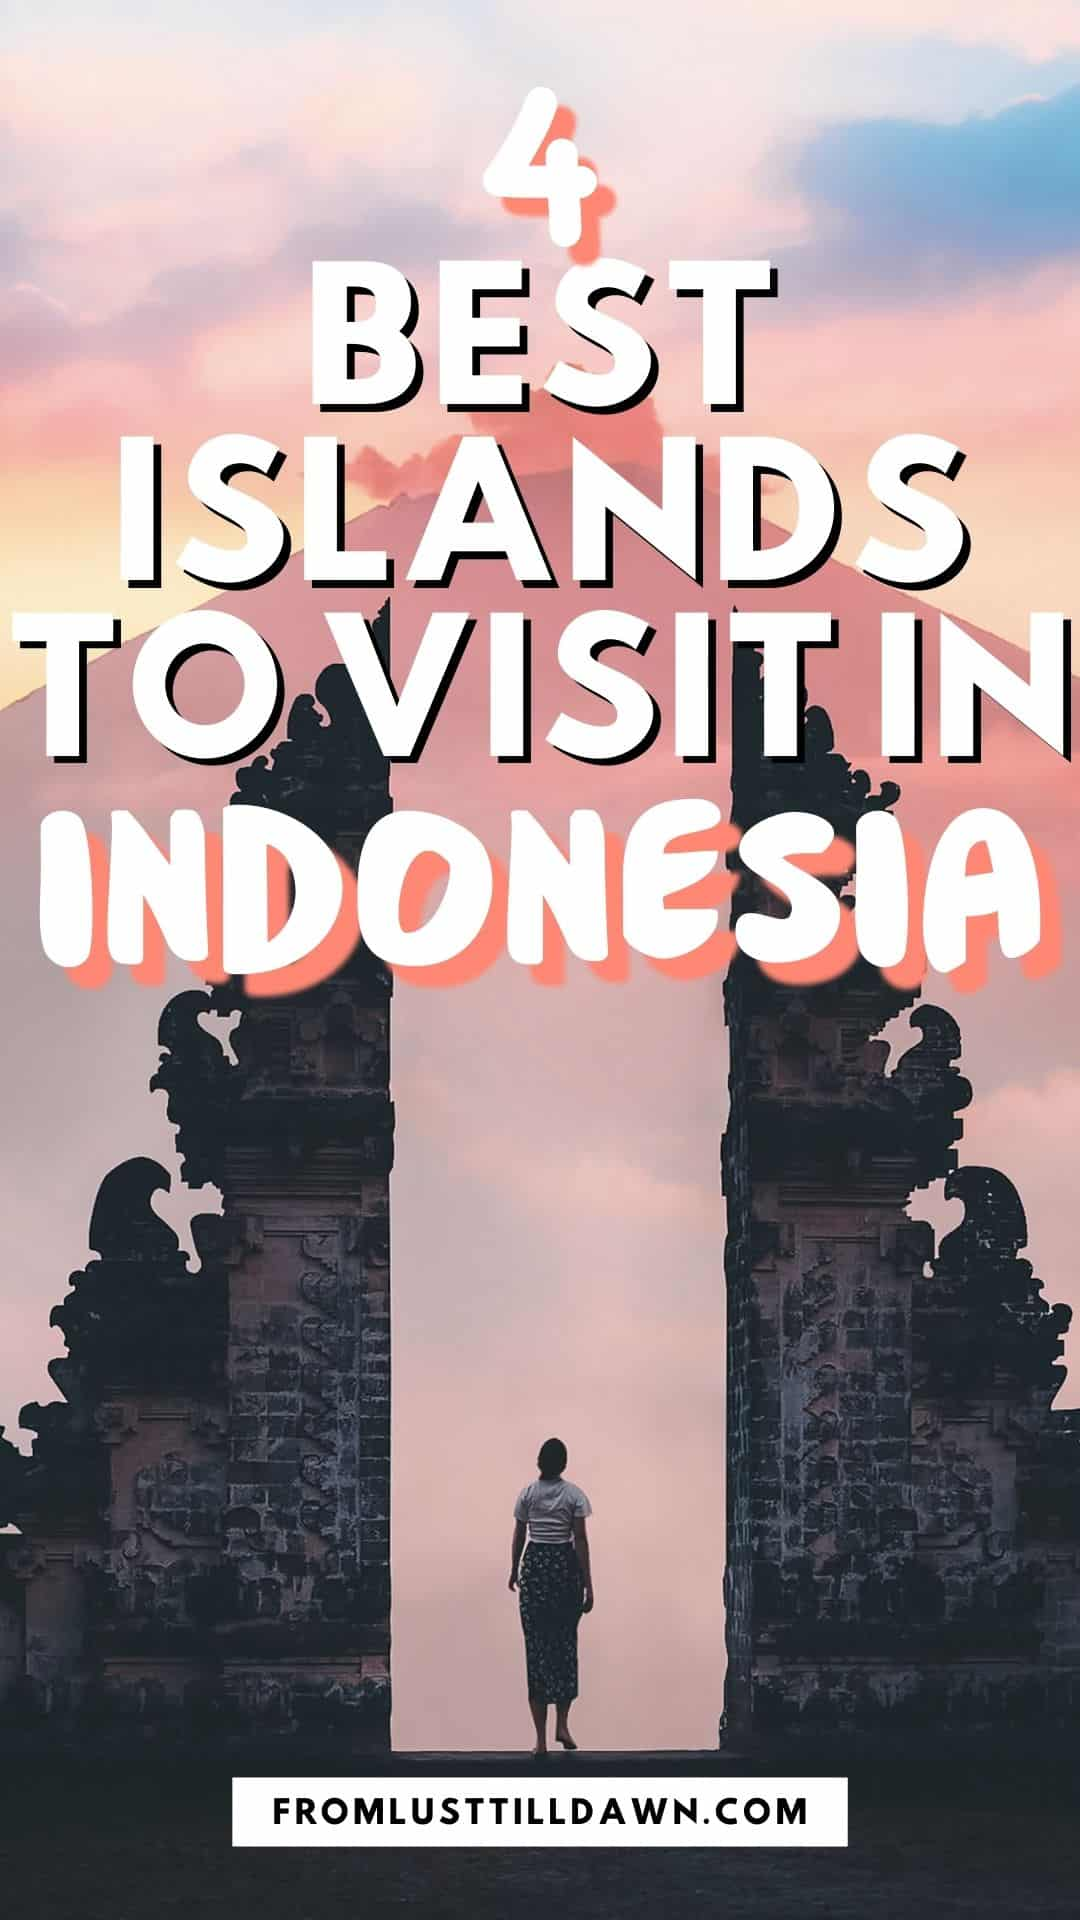 This is a Pinterest graphic promoting a blog post on the best islands to visit in Indonesia.